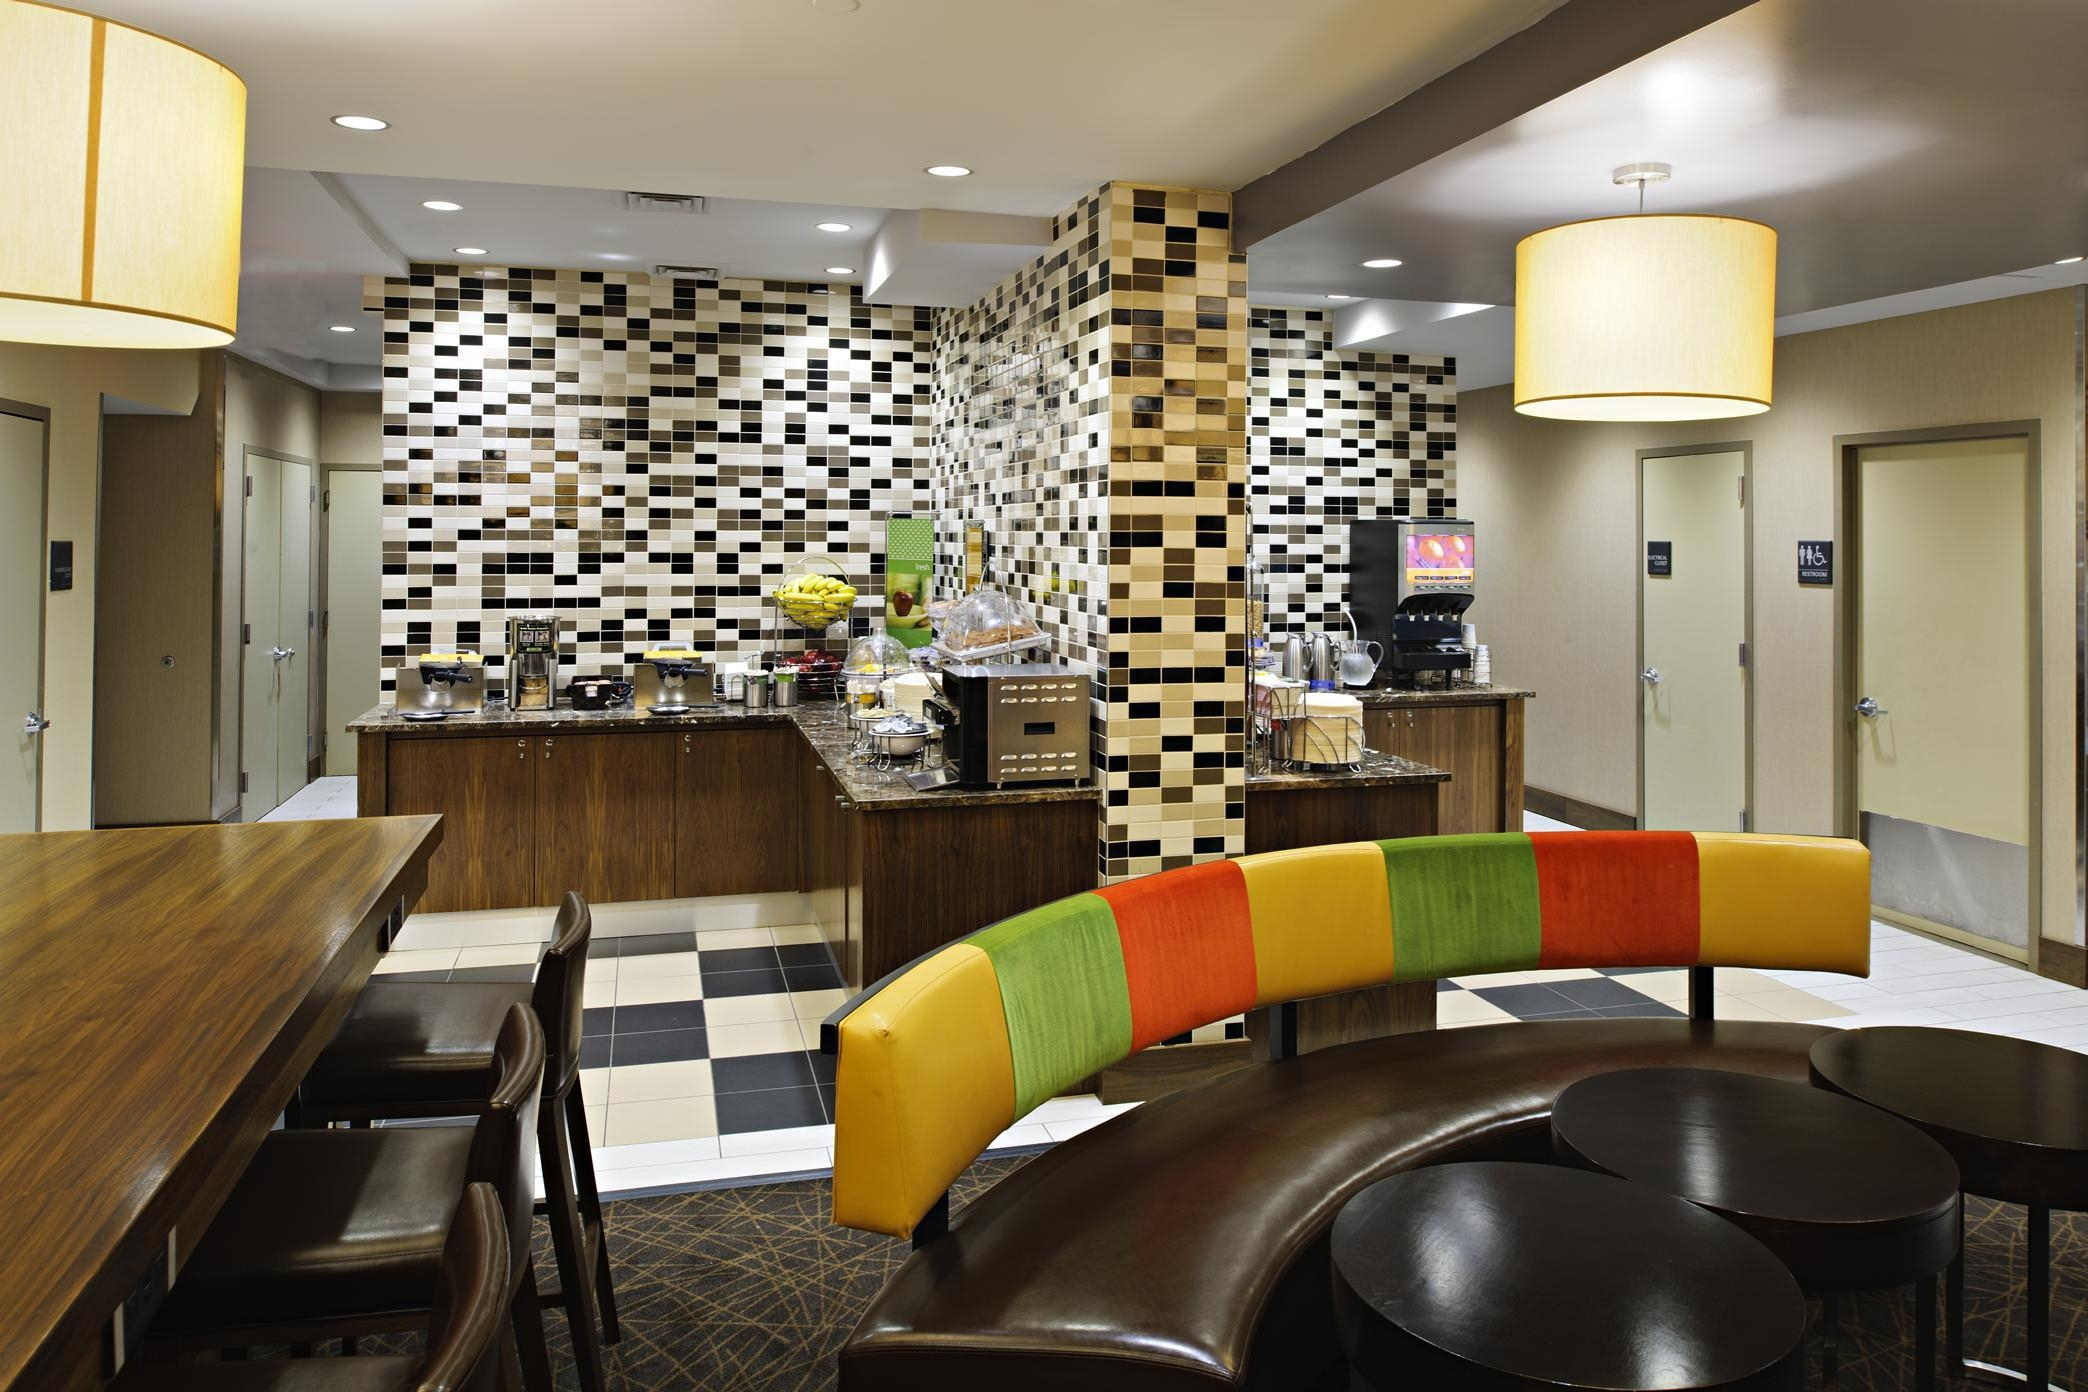 Hampton Inn Manhattan Madison Square Garden Area At 116 West 31st Street New York Ny On Fave